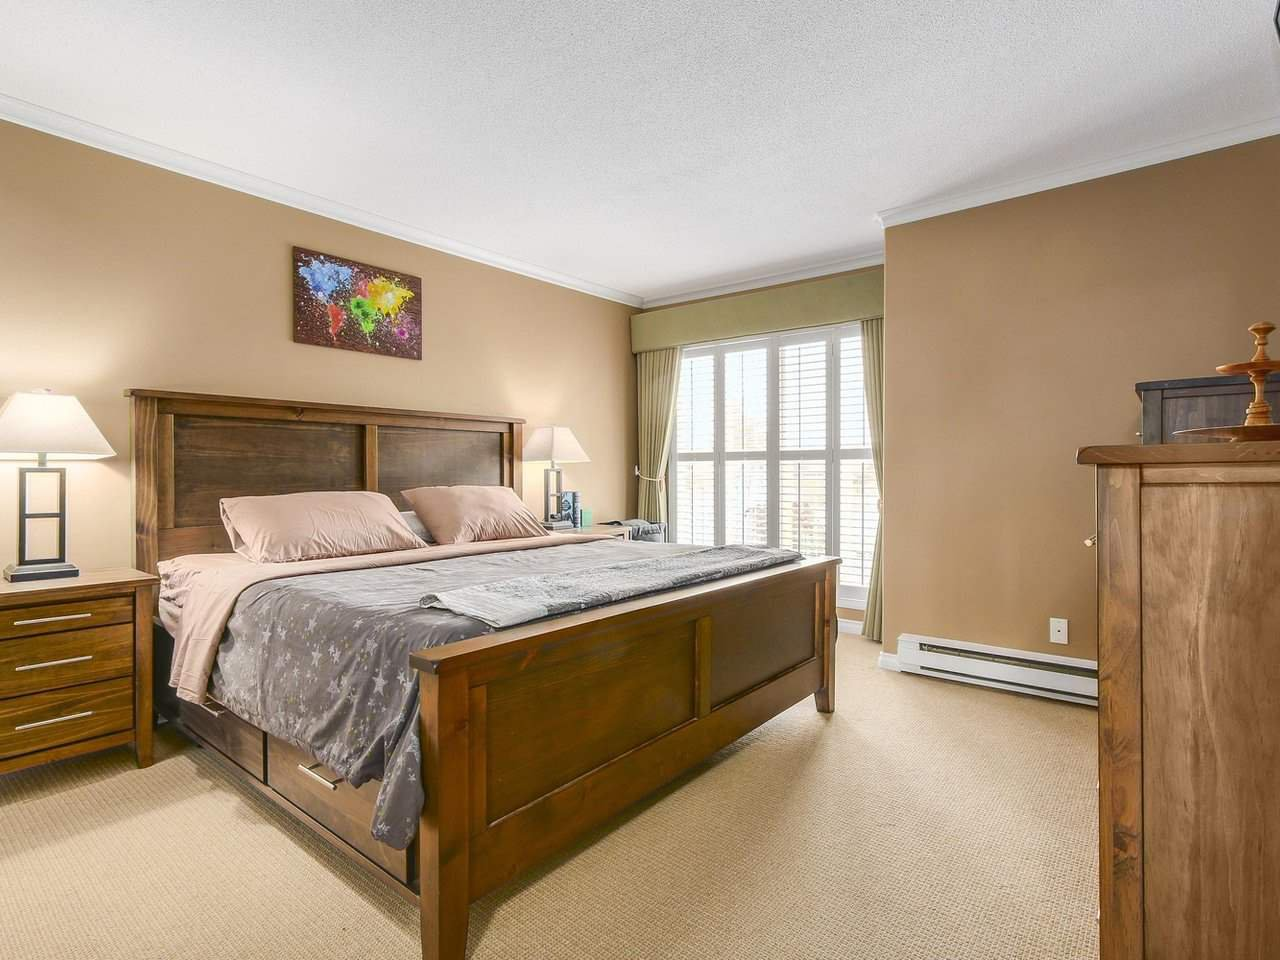 Photo 8: Photos: 304 8120 BENNETT Road in Richmond: Brighouse South Condo for sale : MLS®# R2191205